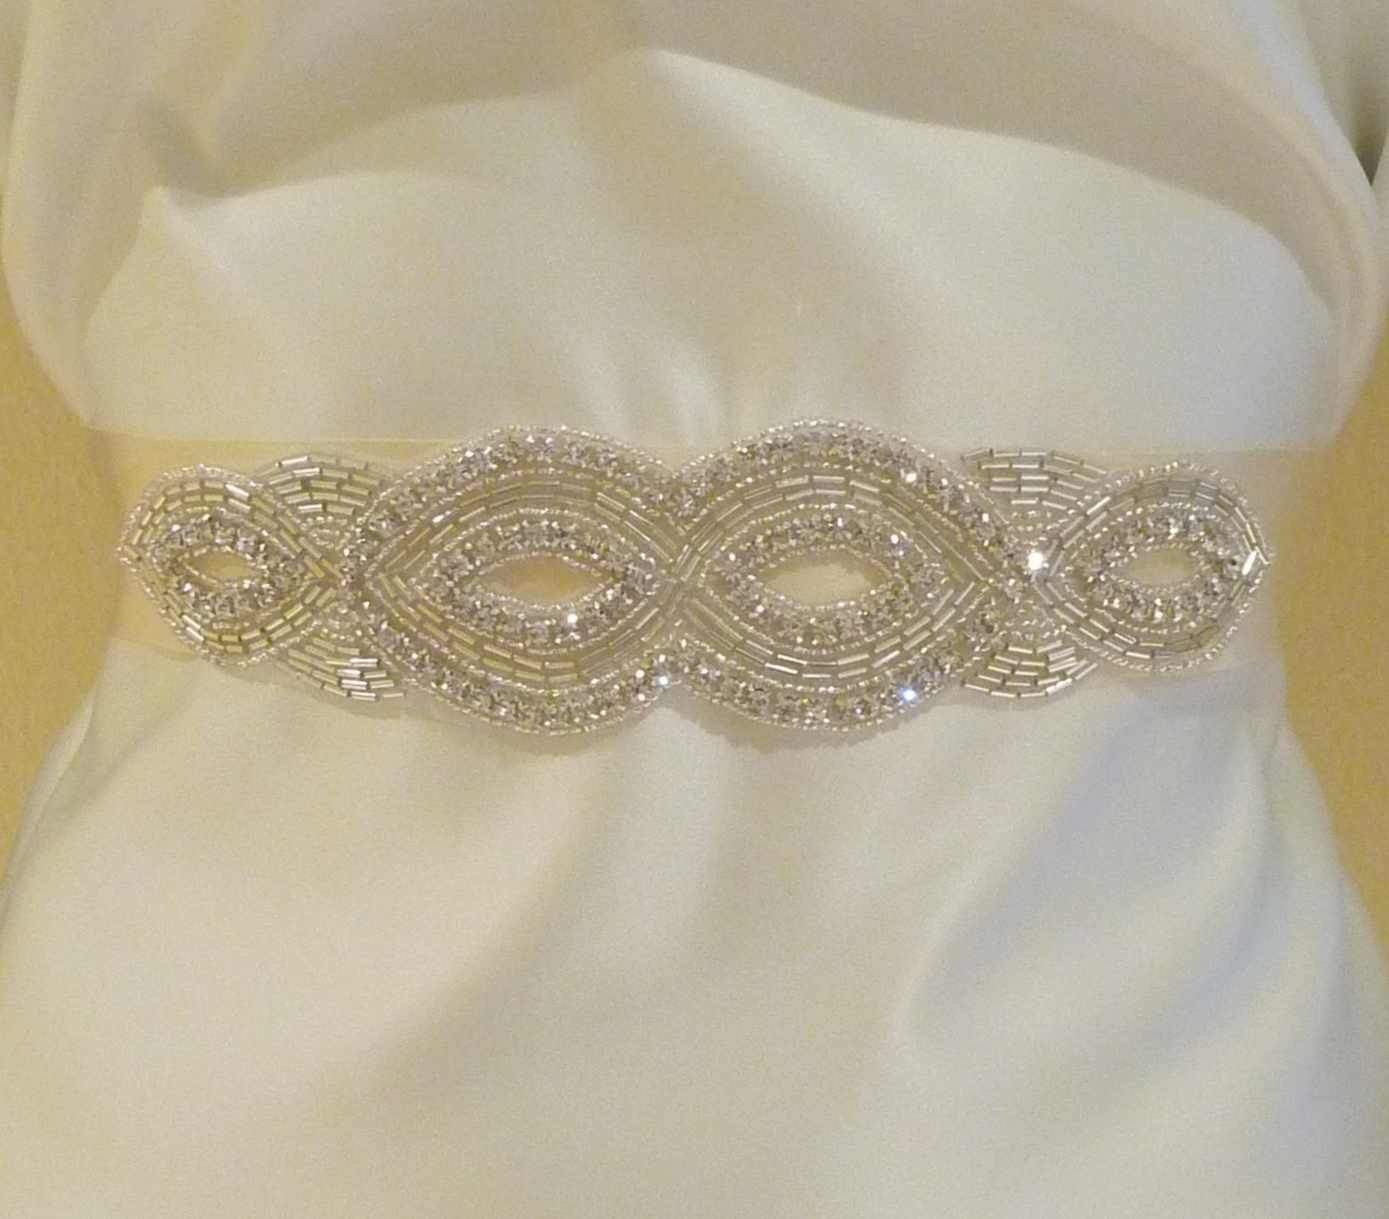 Jewelry, Bridesmaids, Bridesmaids Dresses, Wedding Dresses, Fashion, white, ivory, silver, dress, Wedding, Bridal, Sash, Satin, Rhinestone, Handmade, satin wedding dresses